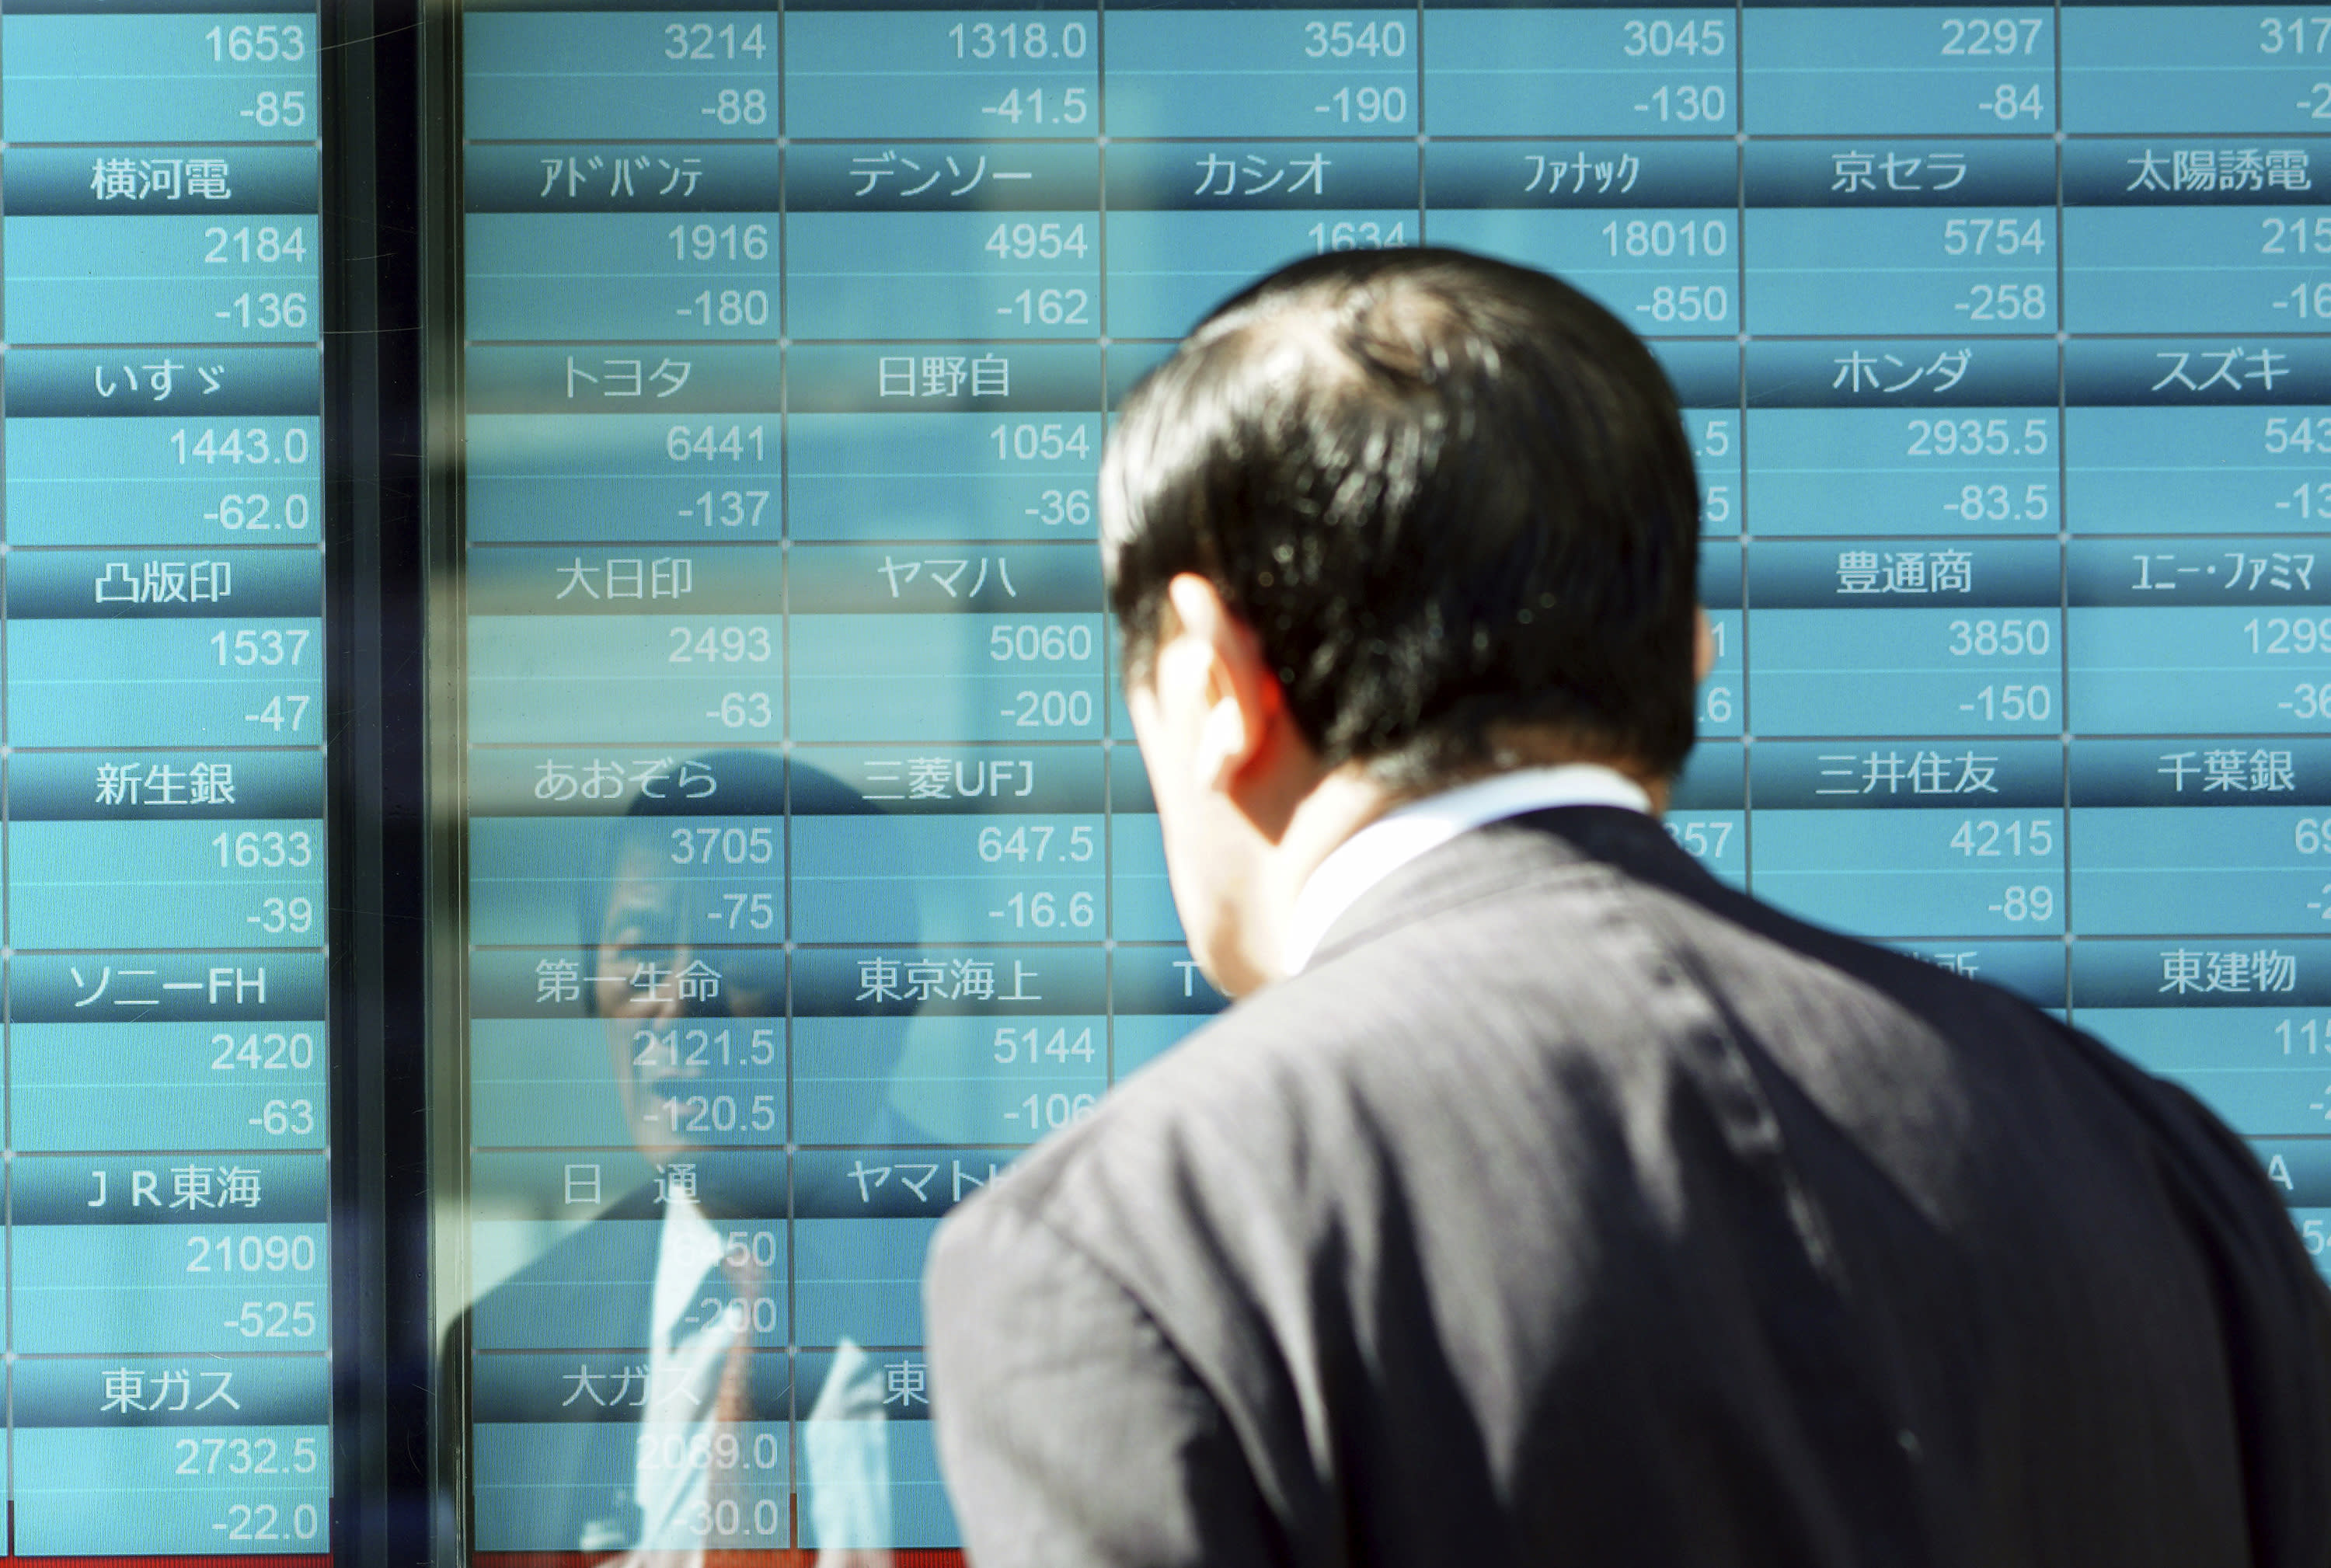 A man looks at an electronic stock board showing Japan's Nikkei 225 index and other countries index at a securities firm Thursday, Oct. 25, 2018 in Tokyo. Shares fell moderately in Asia on Thursday after another torrent of selling gripped Wall Street overnight, sending the Dow Jones Industrial Average plummeting more than 600 points and erasing its gains for the year. Japan's Nikkei 225 index sank sharply on the open but leveled off, regaining some lost ground. (AP Photo/Eugene Hoshiko)